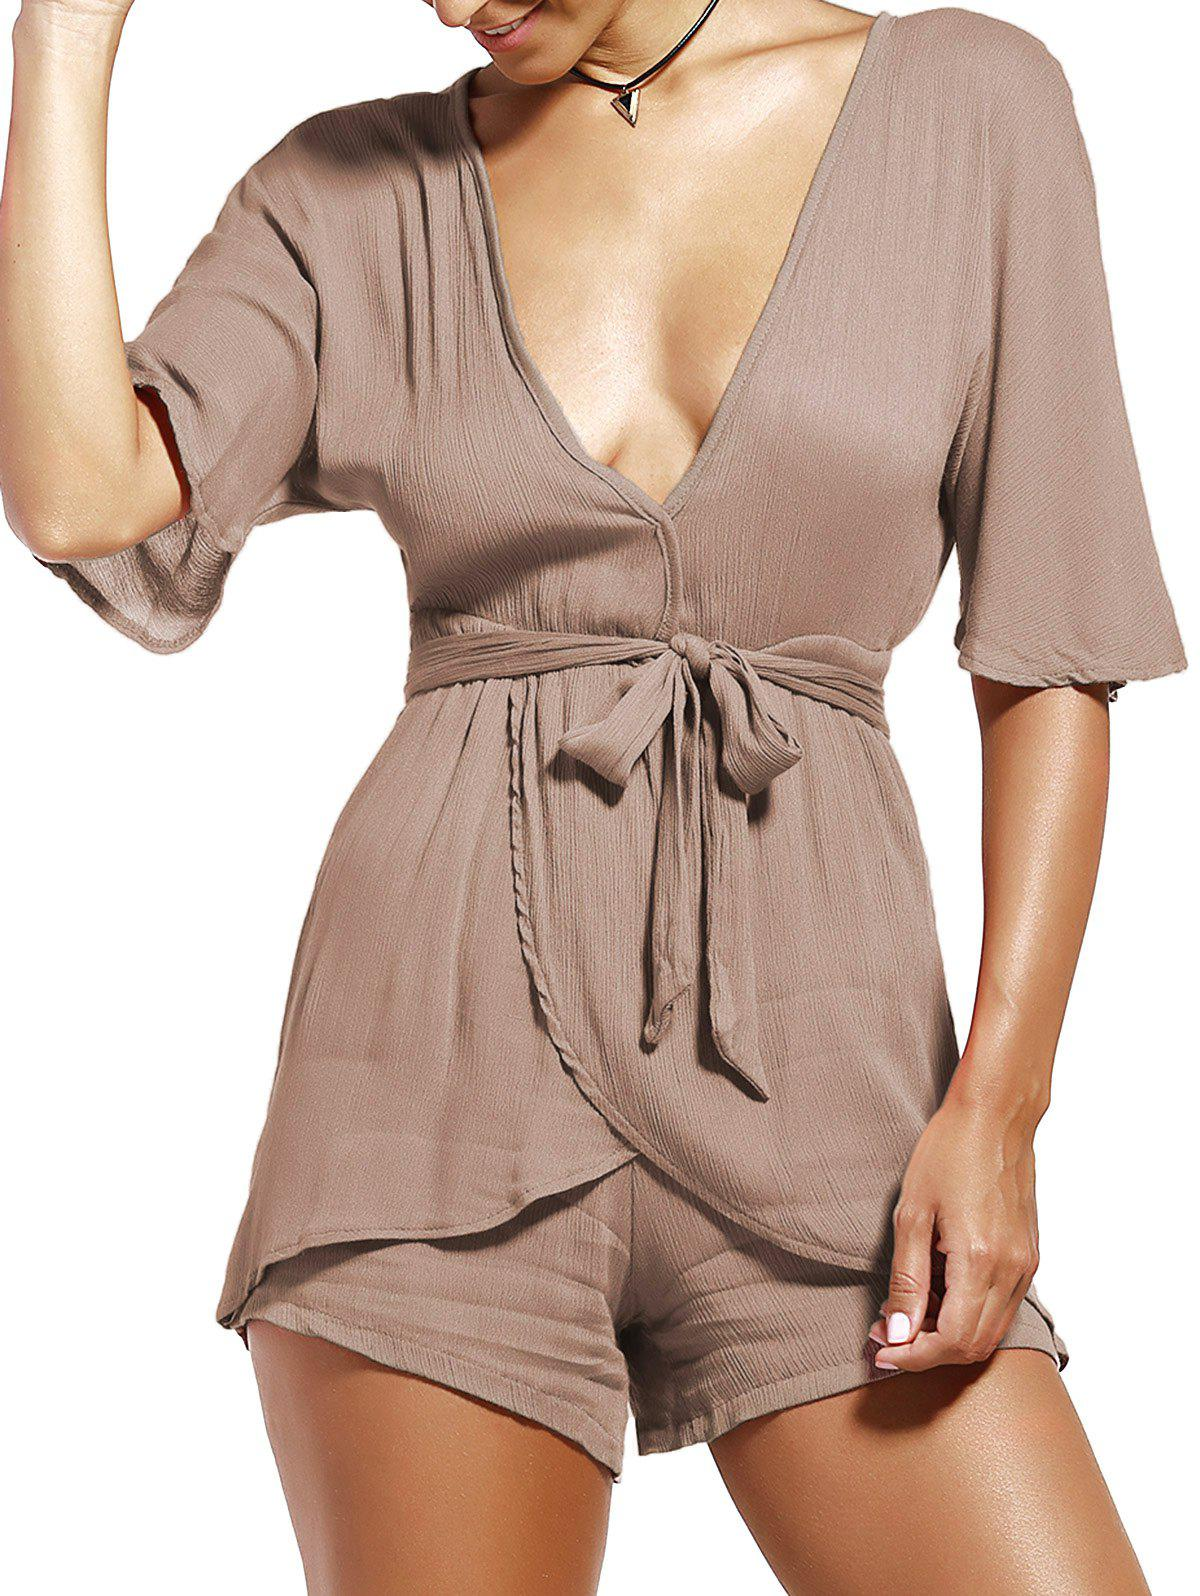 Affordable Plunging Neckline Wrap Romper